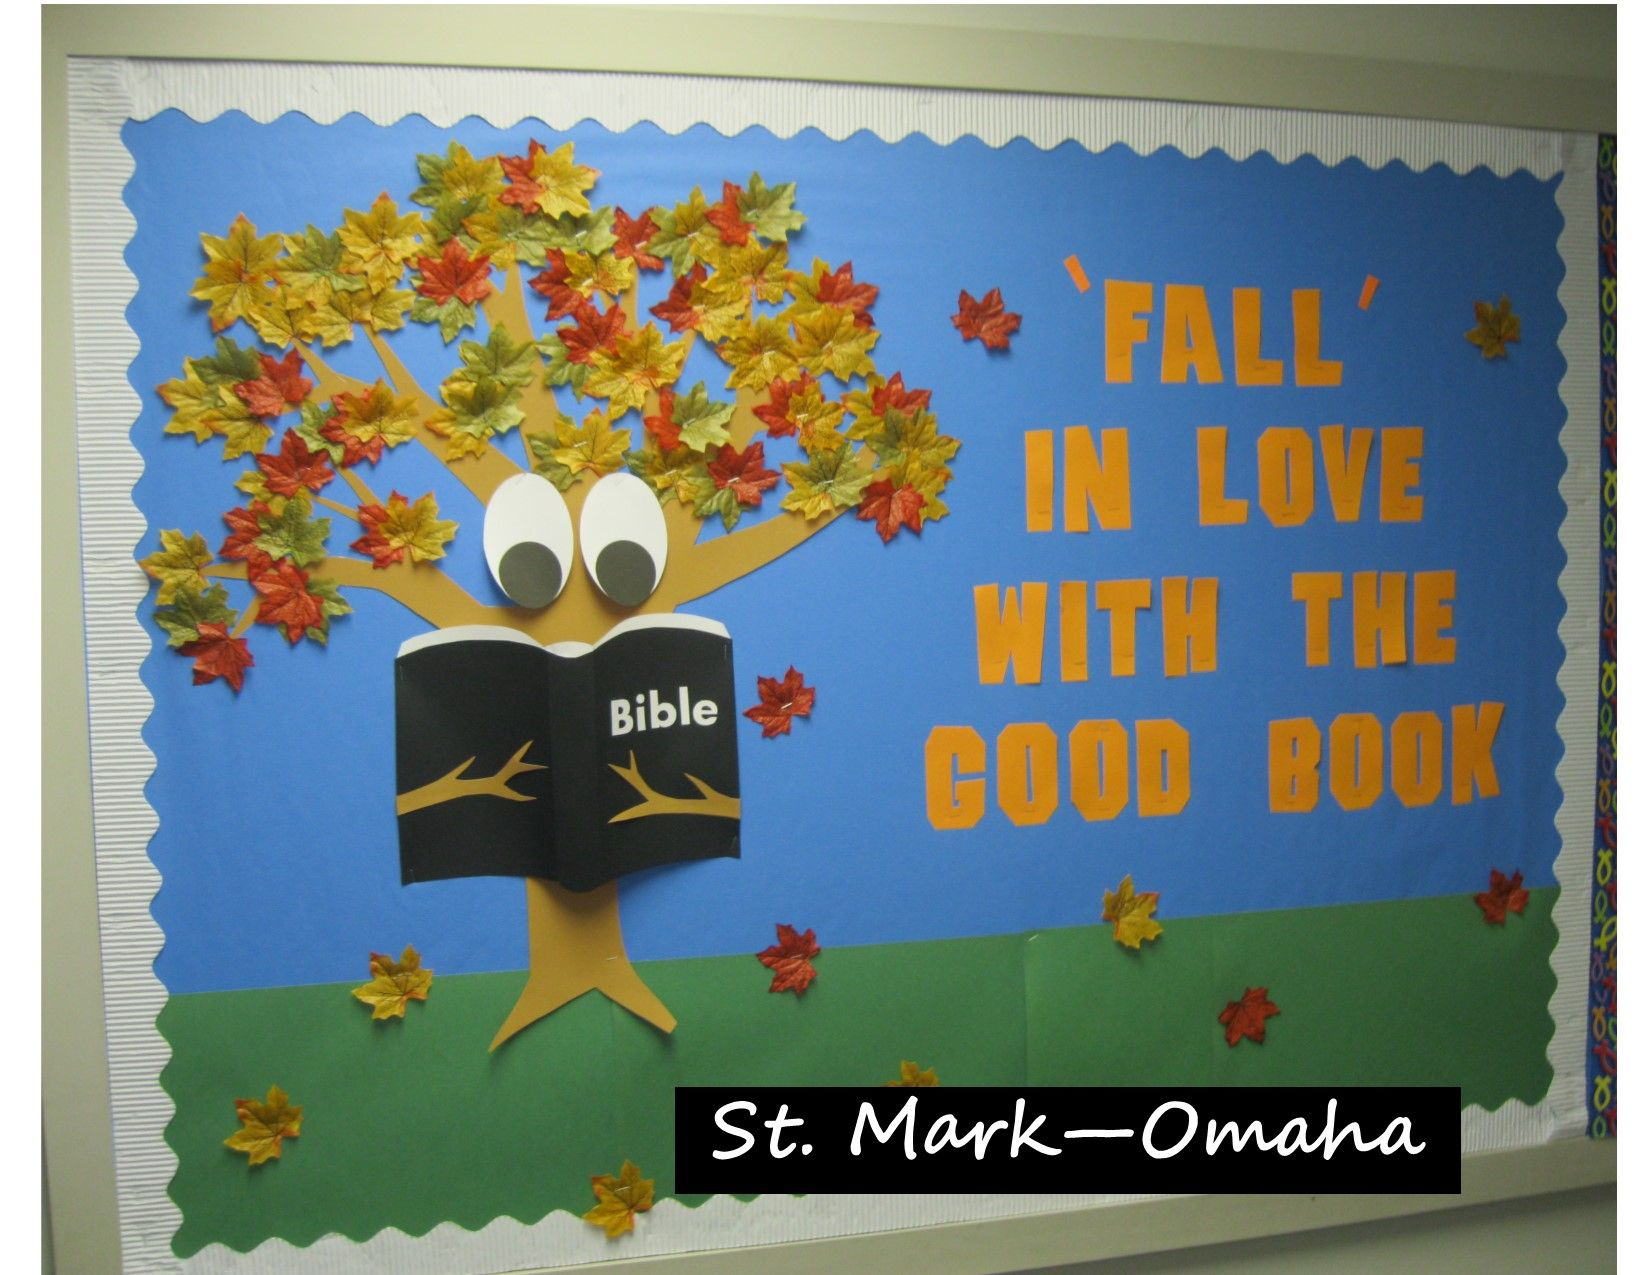 Sunday School Bulletin Board For Fall The Book Stands Out From Christian Boards Thanksgiving